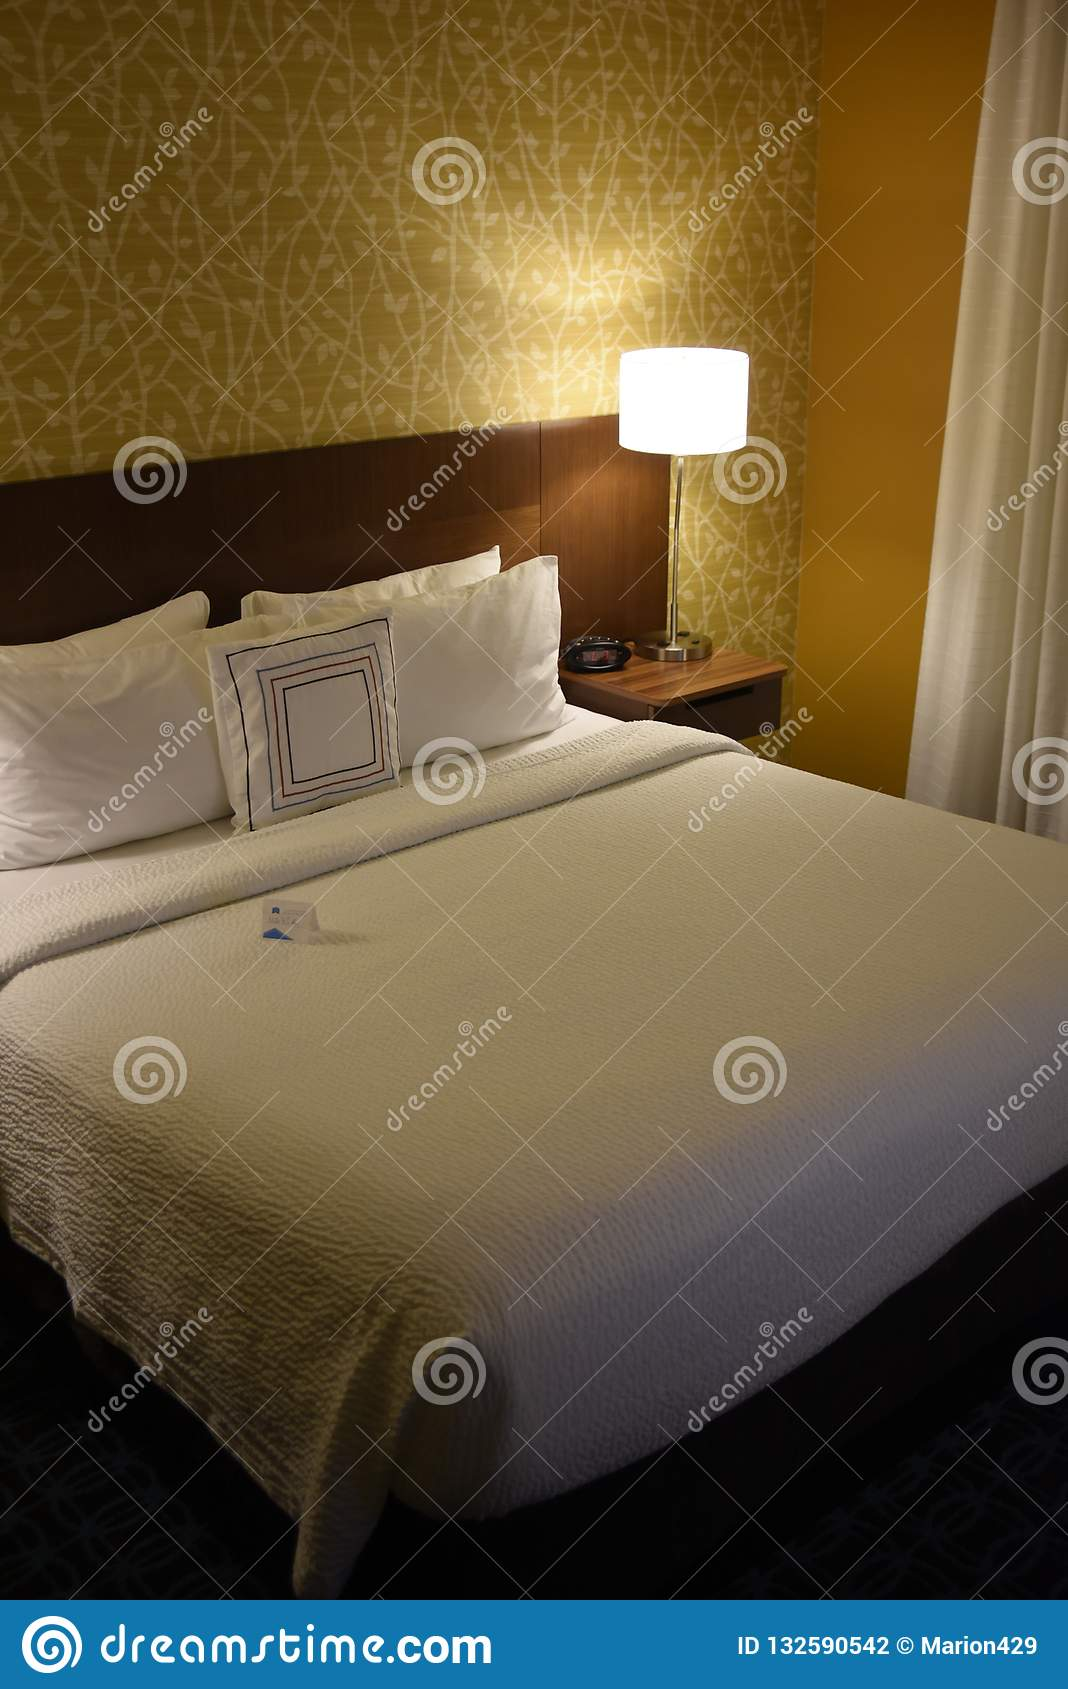 Twin Bed Hotel Room: Hotel Room First View Stock Photo. Image Of Room, Hotel